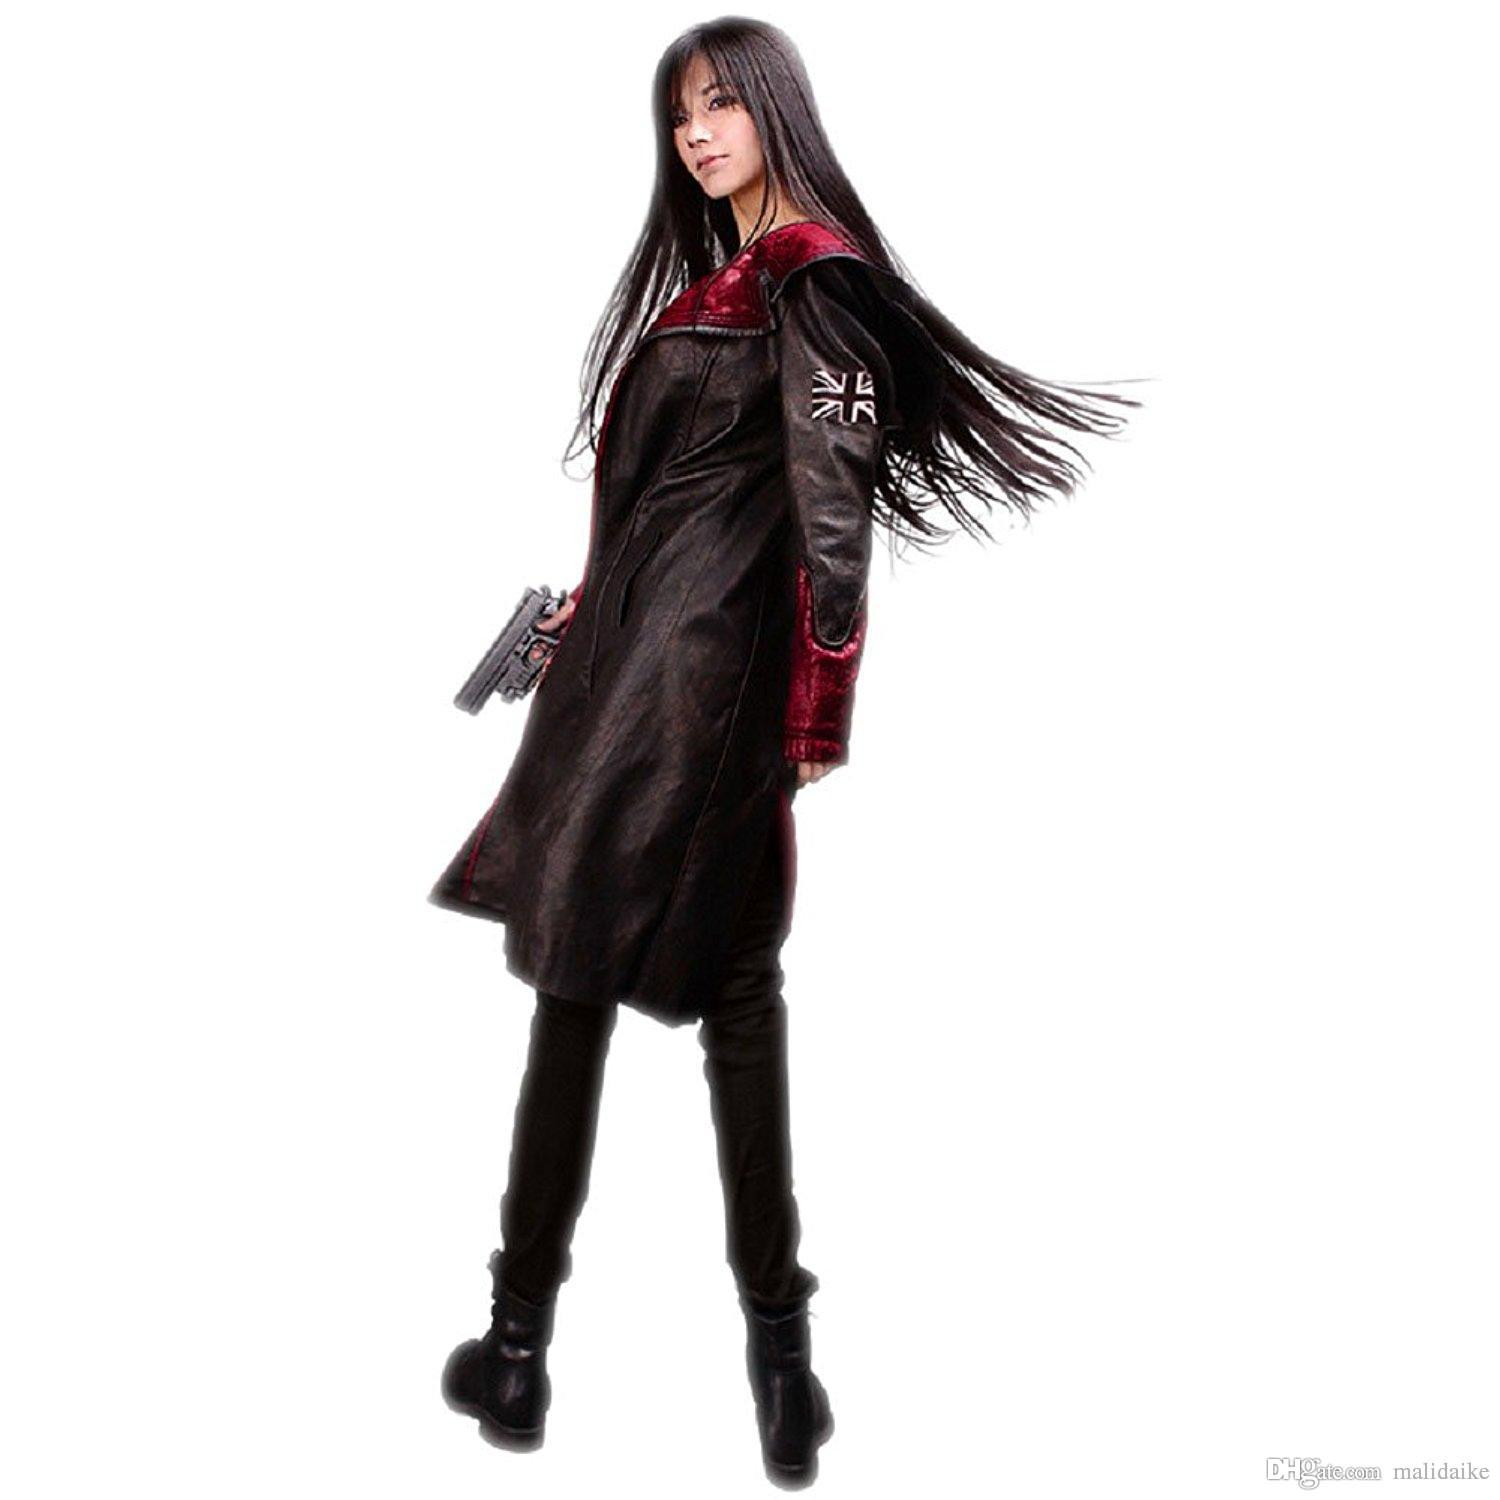 Malidaike Devil May Cry 5 Game Dante Cosplay Costume Neutral Trenchcoat Leather Long Jacket Best Gift For Everyday Wear And Halloween Sexy Anime